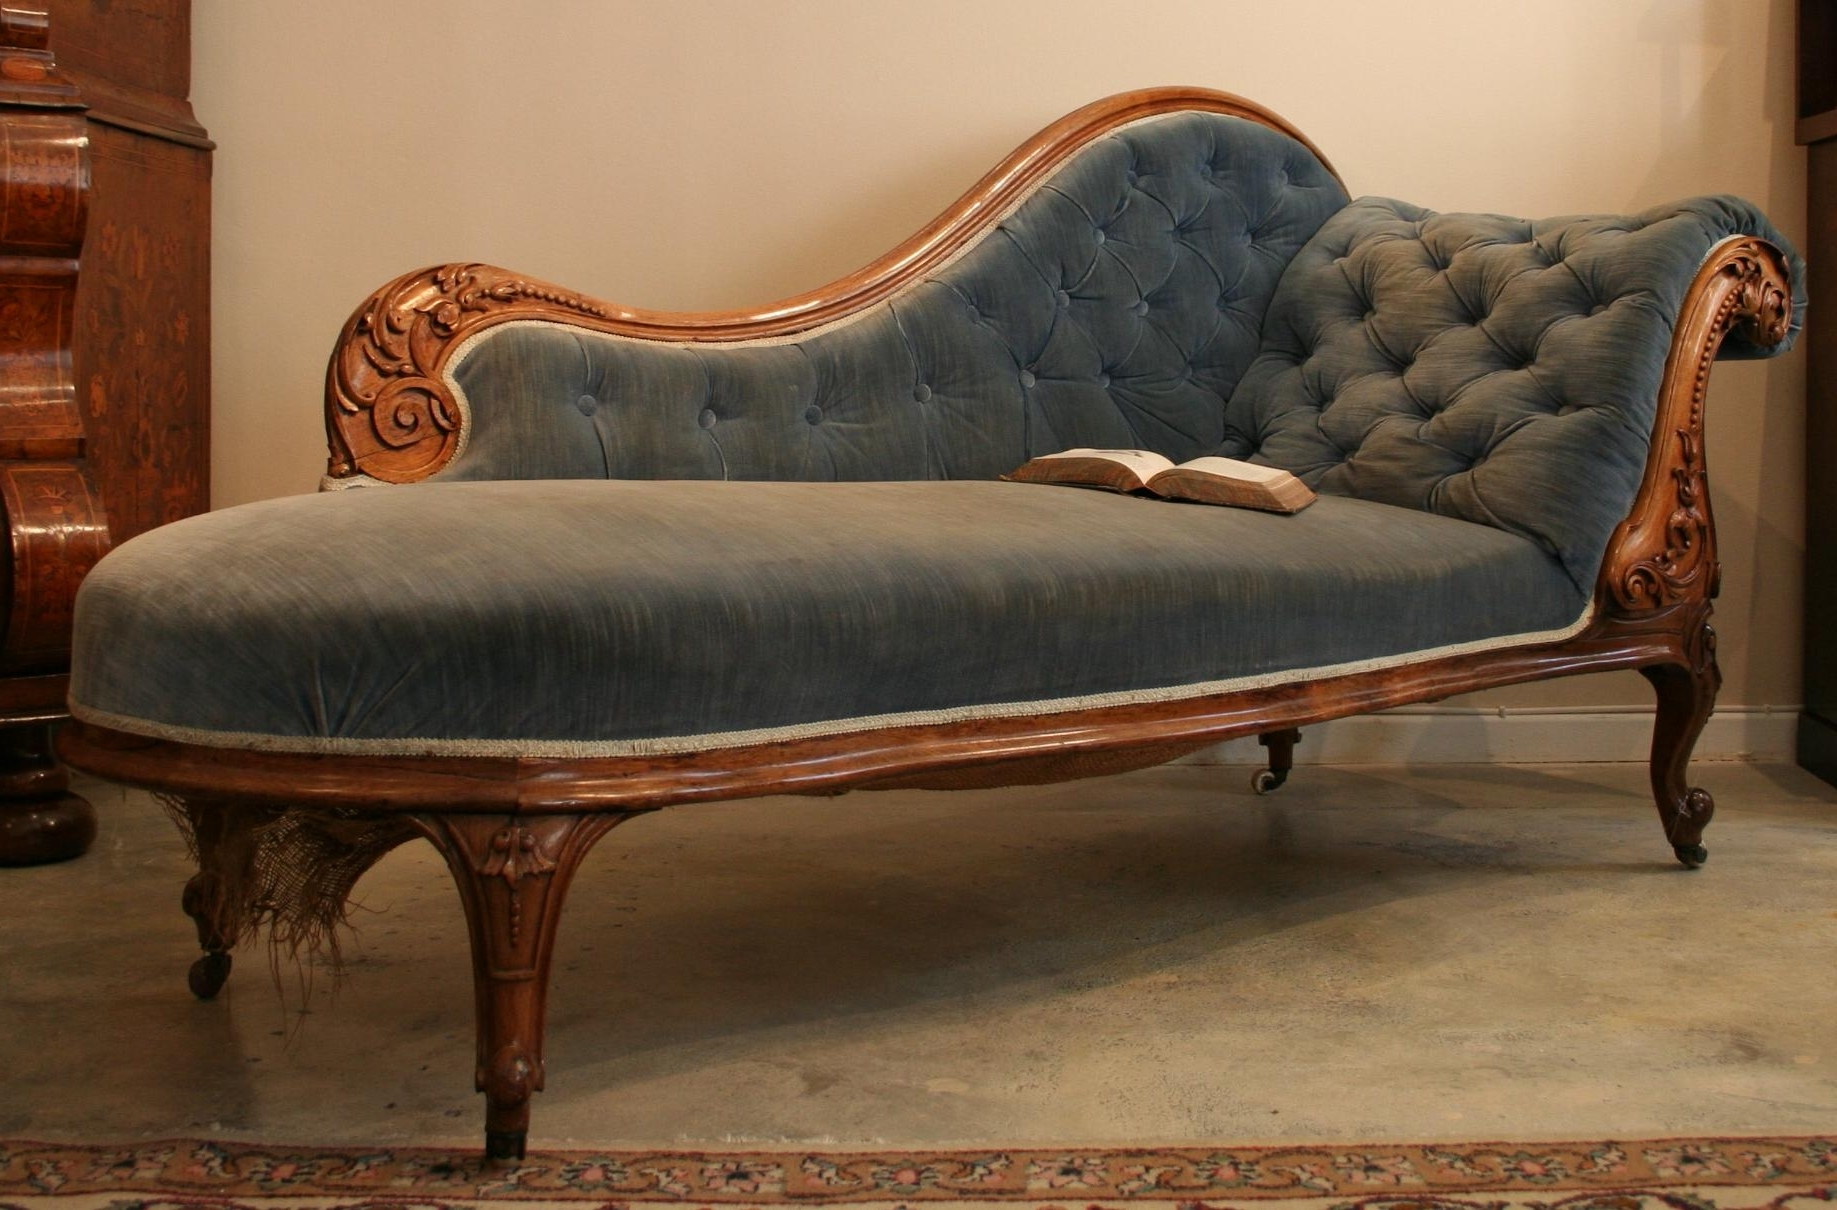 Sofa : Cute Victorian Chaise Lounge Chair Aqua 1 Sofa Victorian Inside Well Known Sofa Lounge Chairs (View 15 of 20)